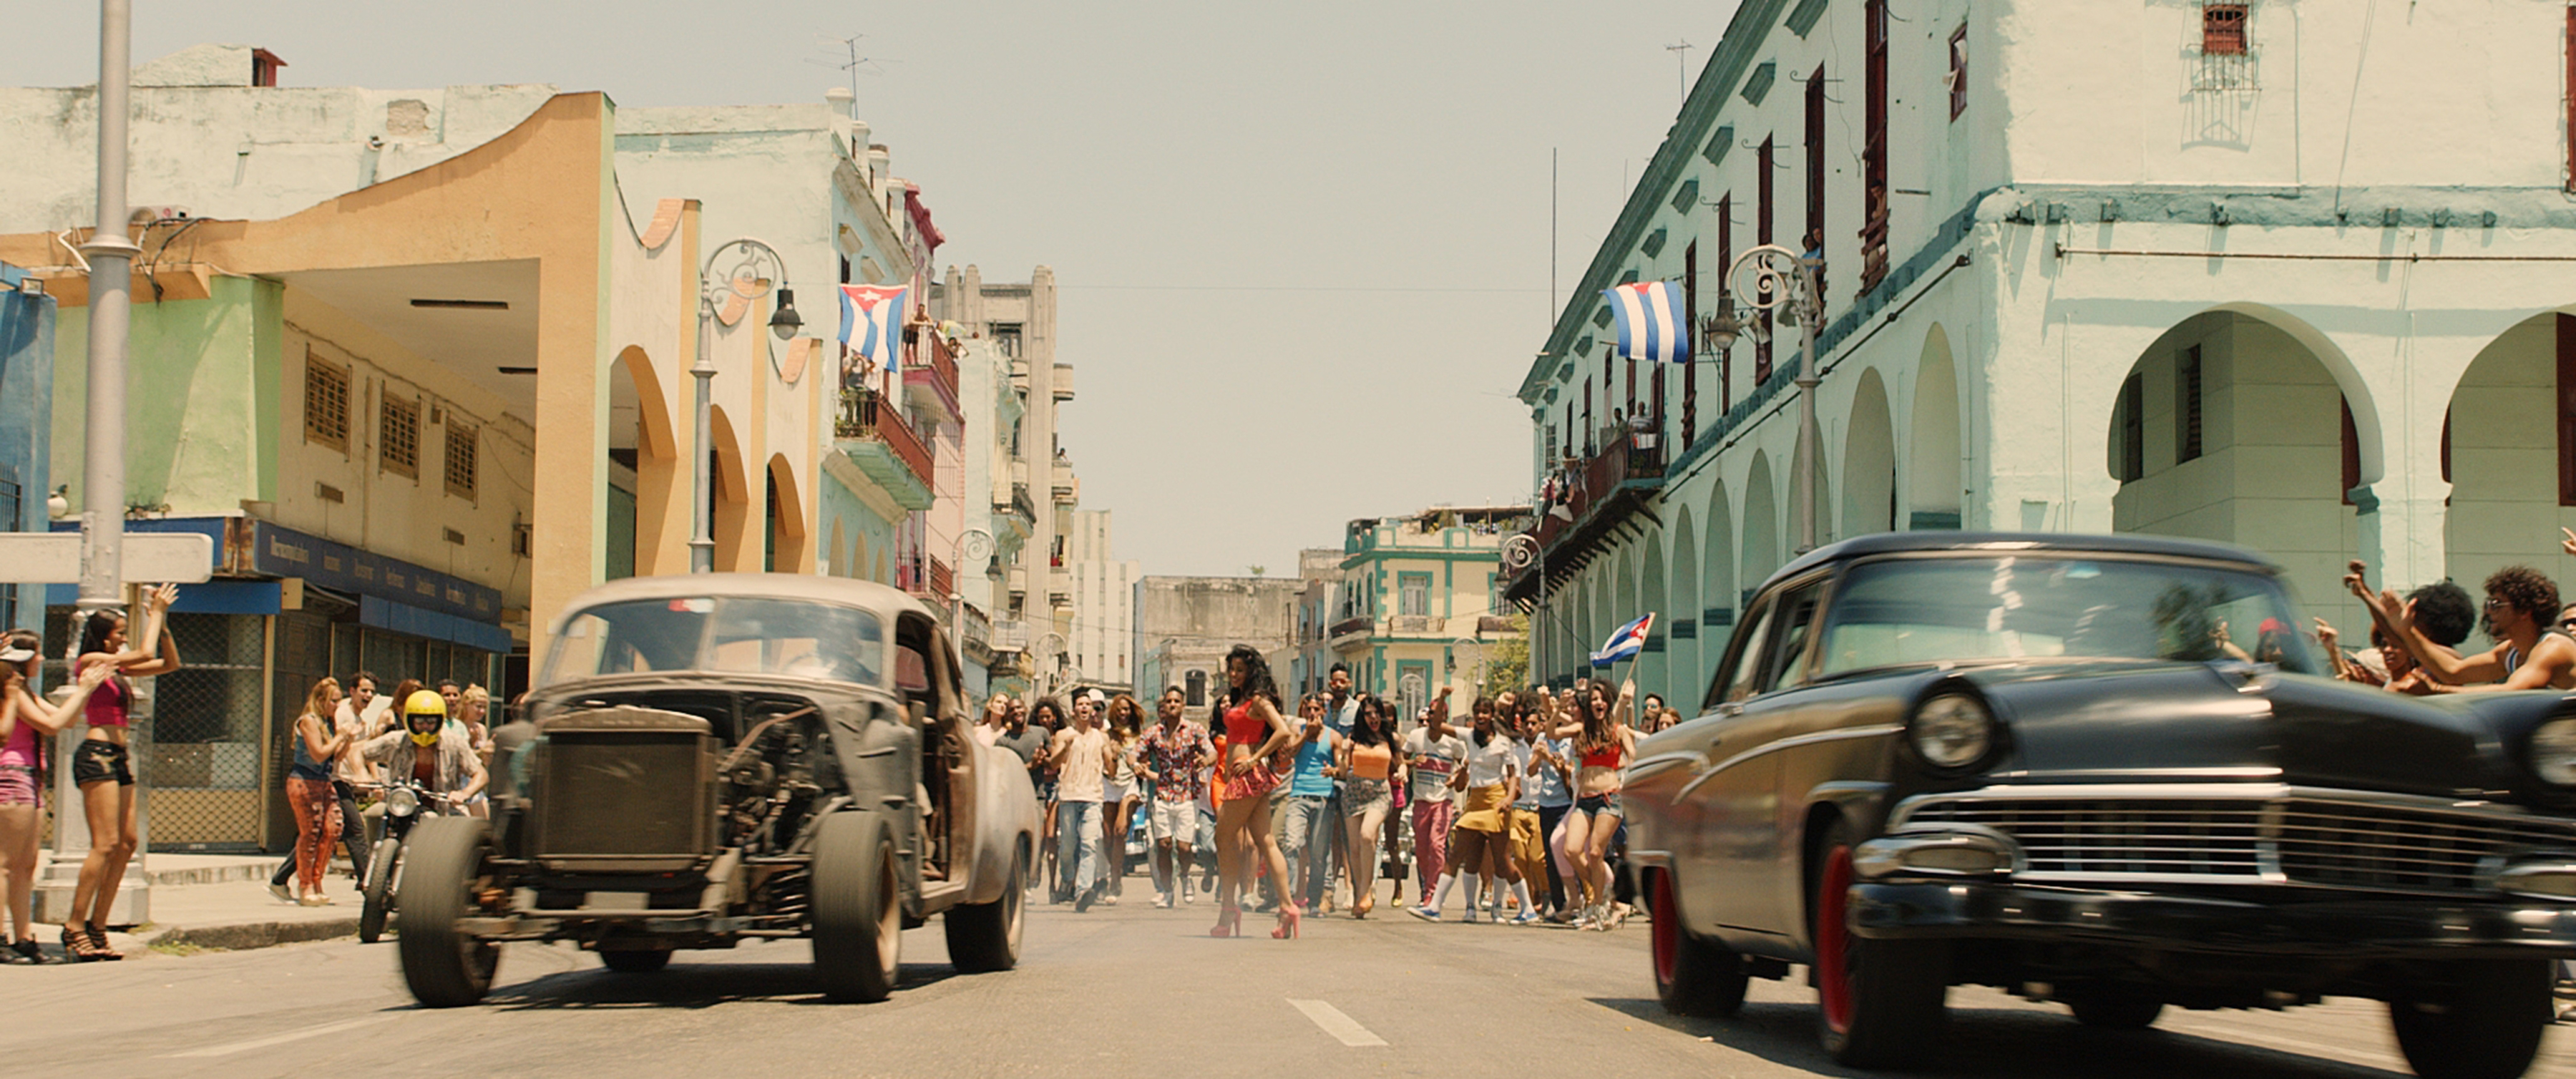 How the Fast & Furious franchise became the first – and maybe last – US film to shoot in Cuba